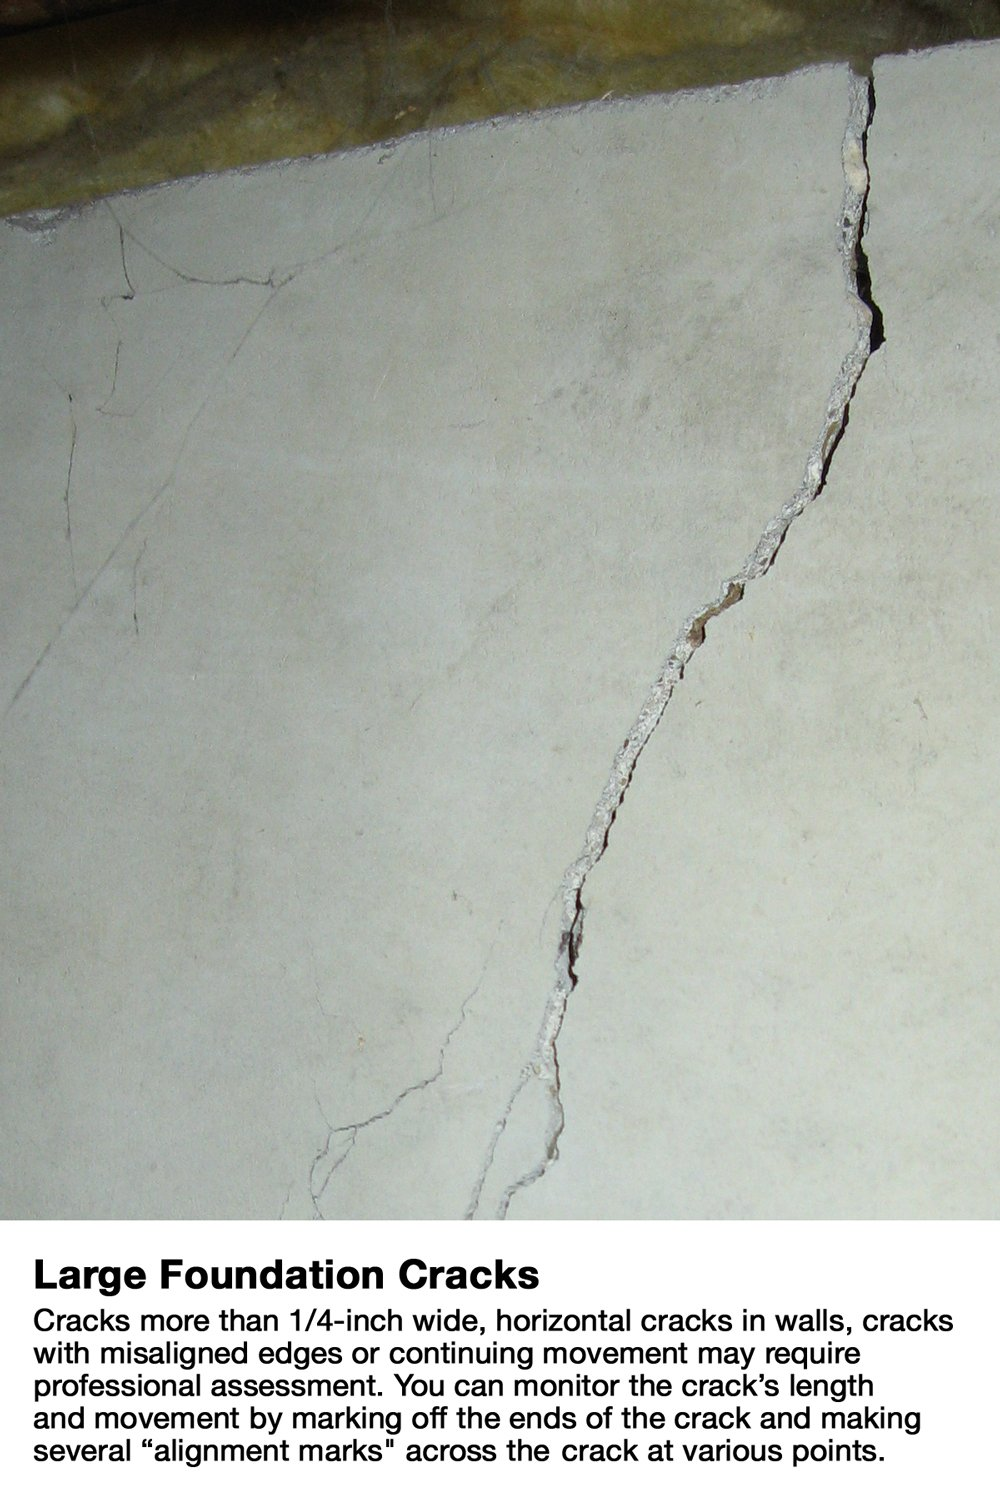 Diy Concrete Foundation Crack Repair Kit 10 Ft The Homeowners Basement Wiring Walls Solution To Fixing Wall Cracks Like Pros Surface Products